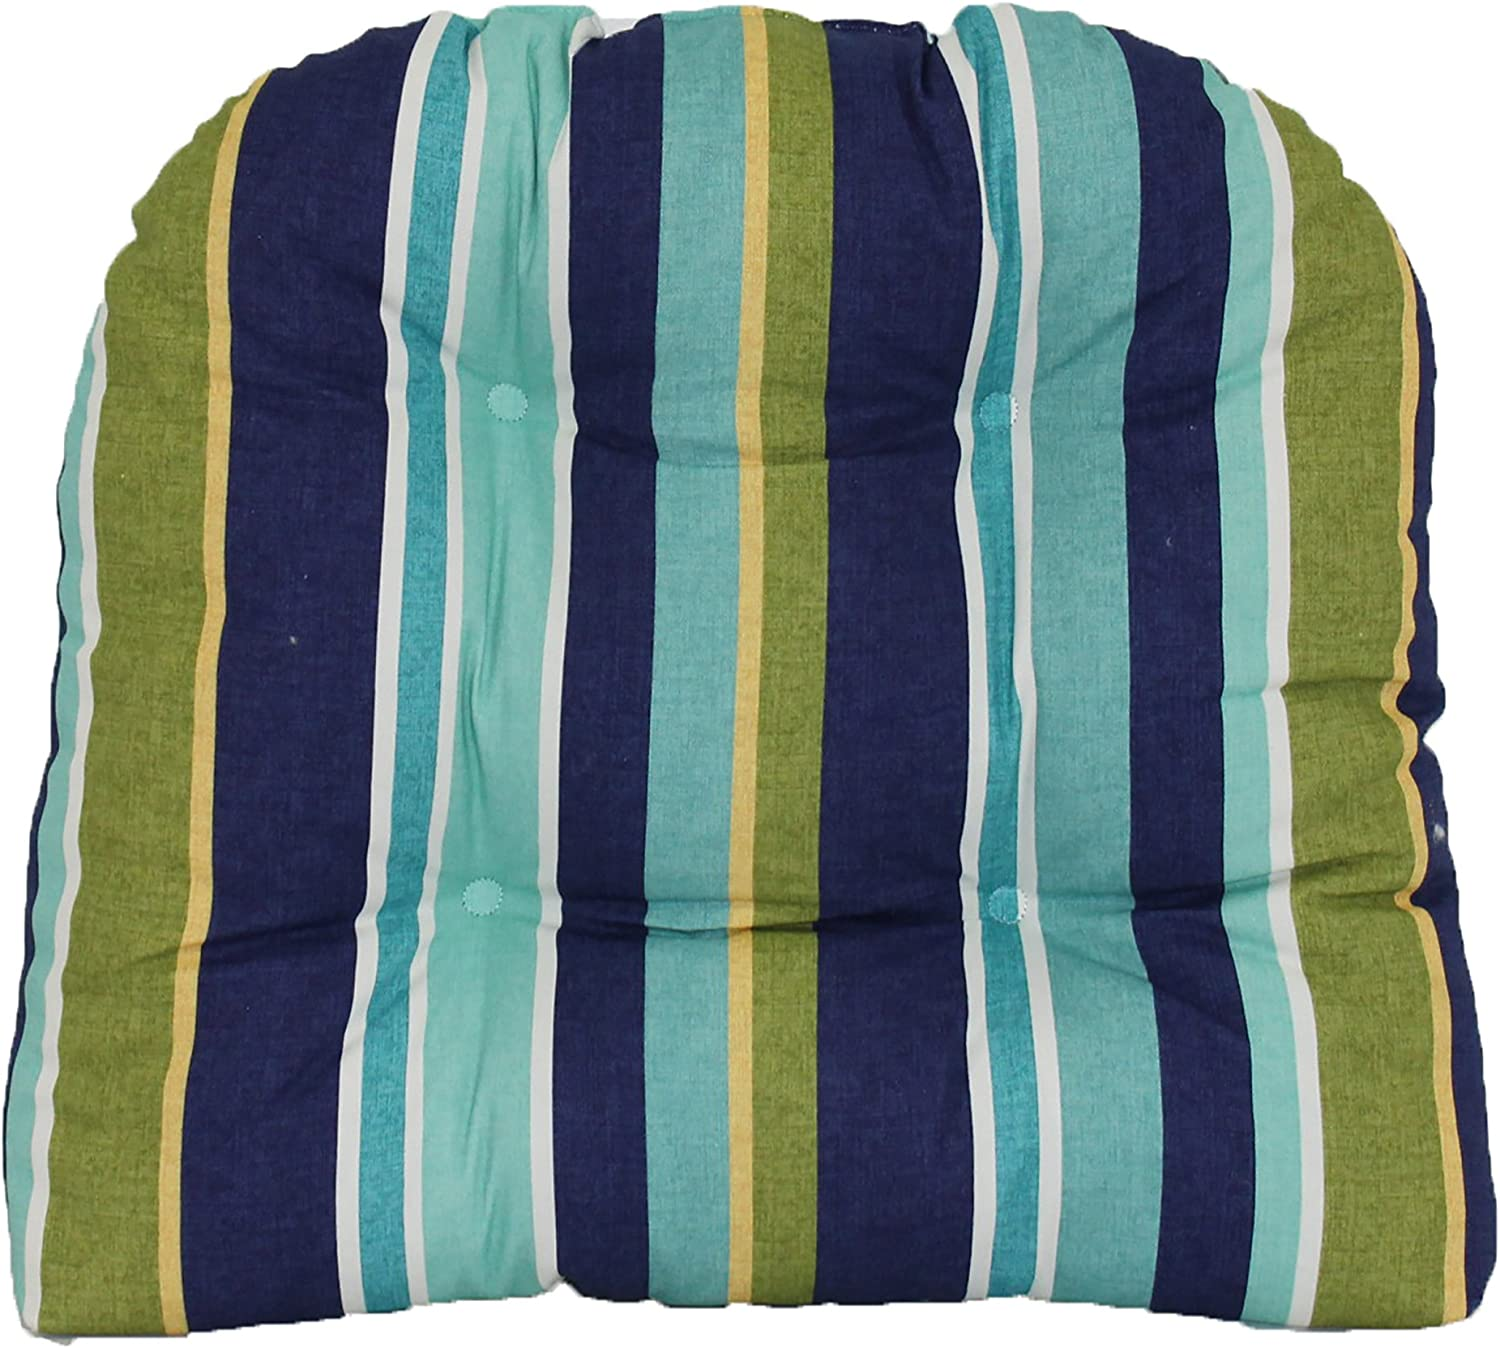 Piper Biscotti Brentwood Originals 35406 Indoor//Outdoor Chair Cushion